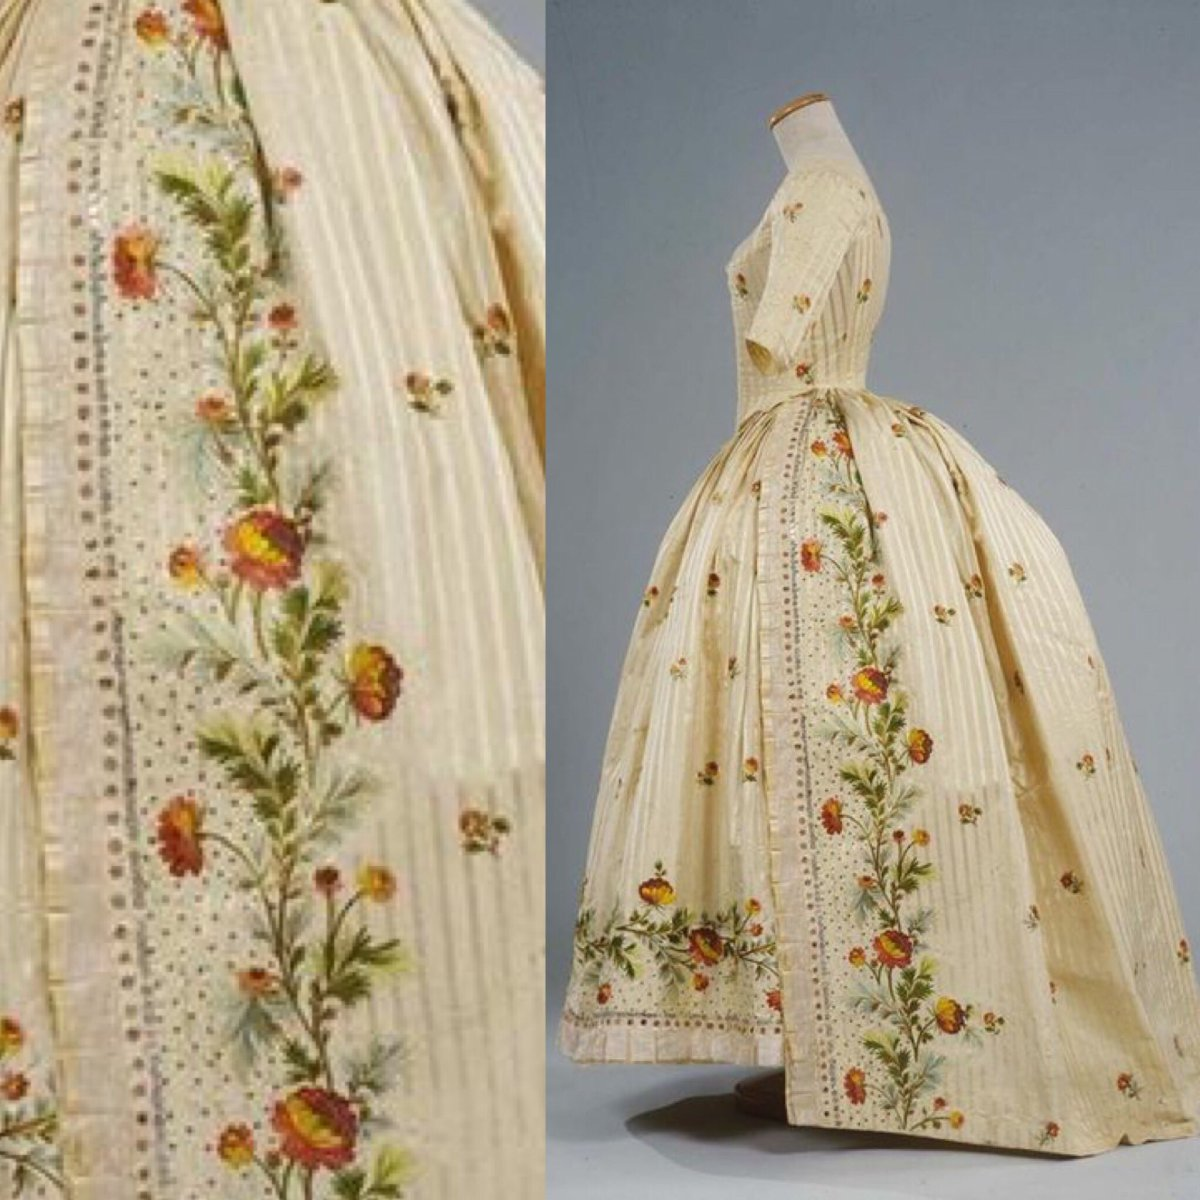 The floral embroidery that blooms on this 1780s' dress is so fine, it looks like it could have been painted. Brush strokes of tiniest satin stitch border the brocade, sprinkling its surface with color.